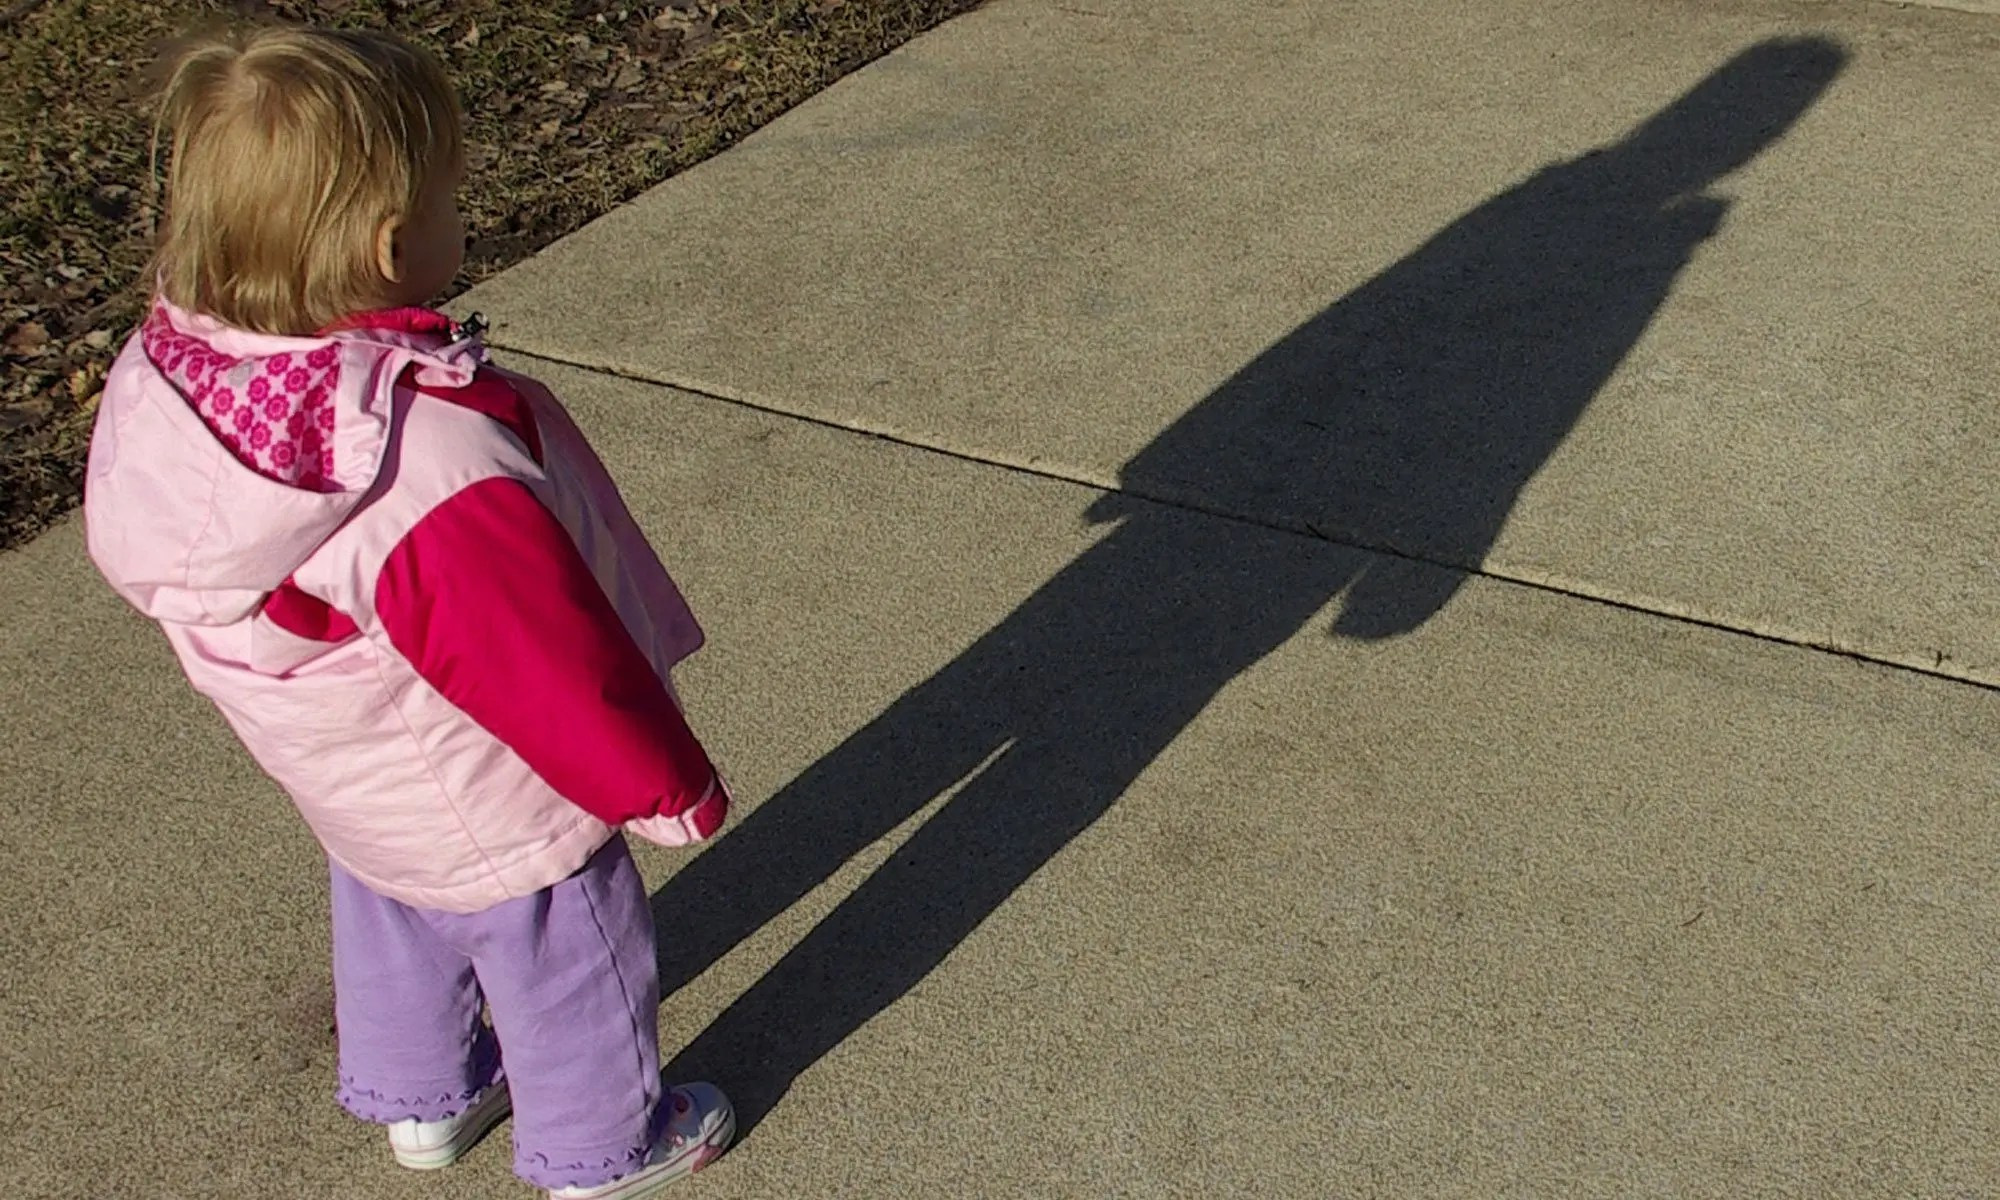 young girl tall shadow image